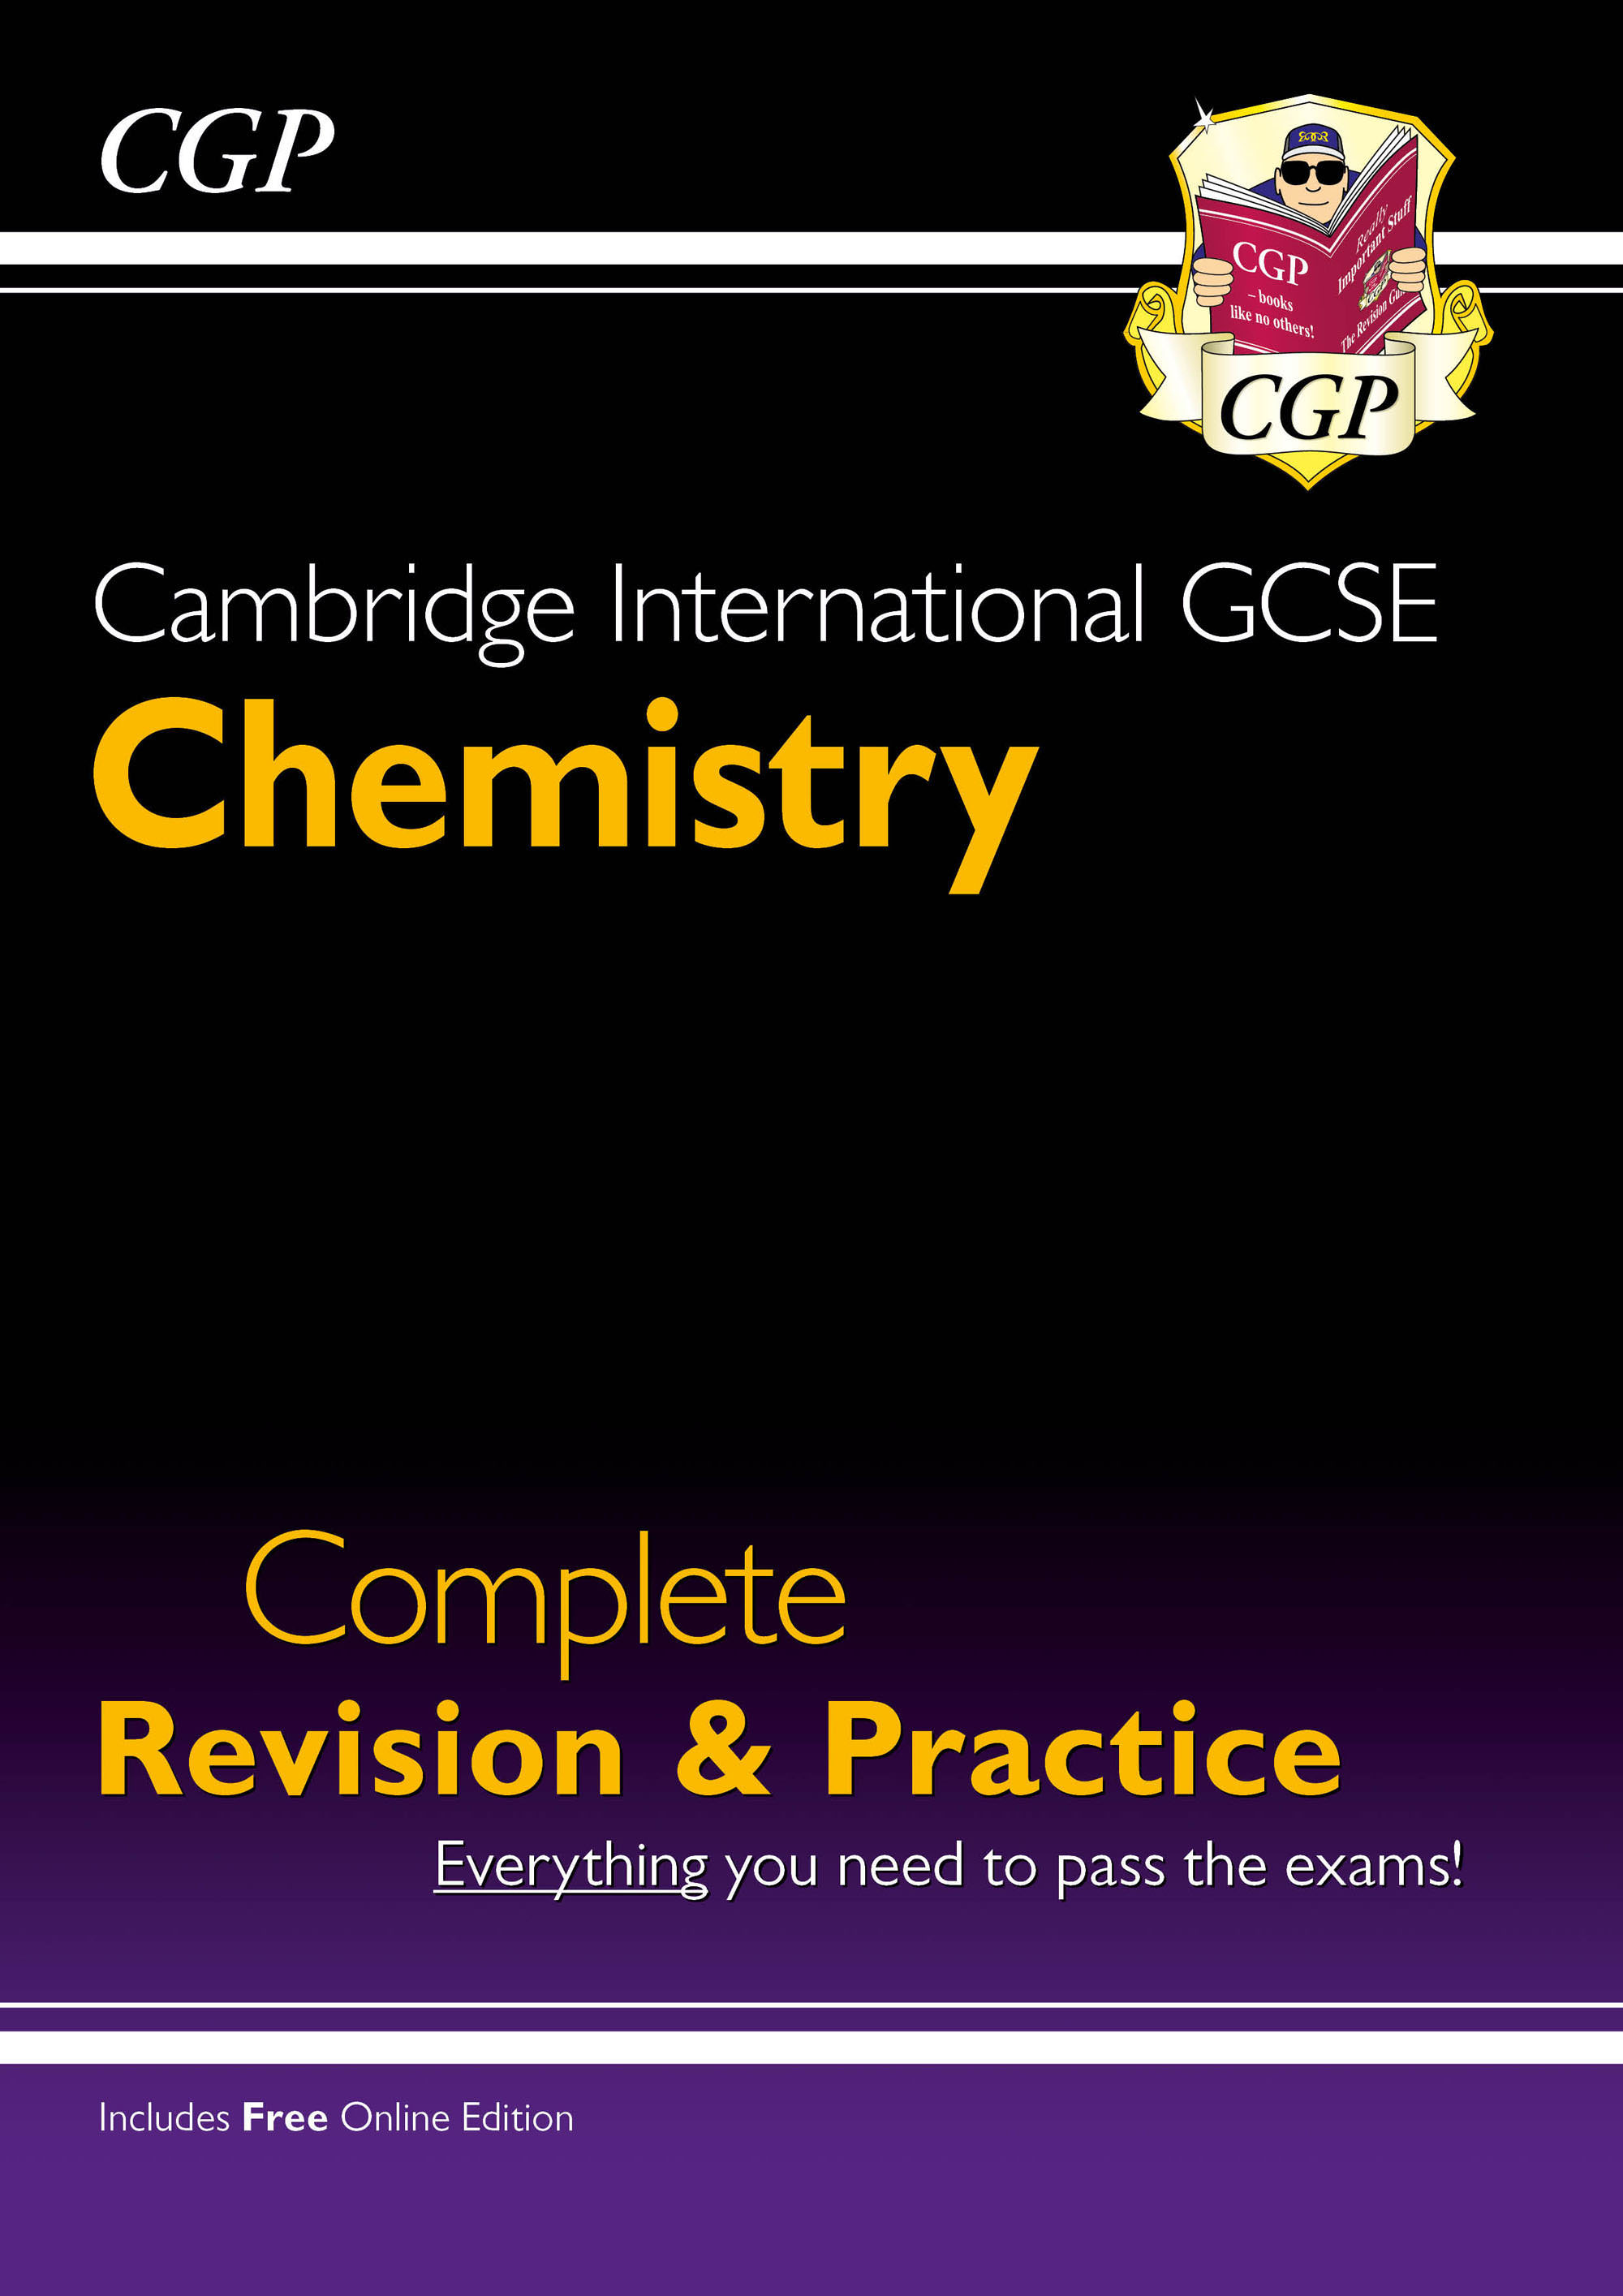 CISI41 - New Cambridge International GCSE Chemistry Complete Revision & Practice: Core & Extended +